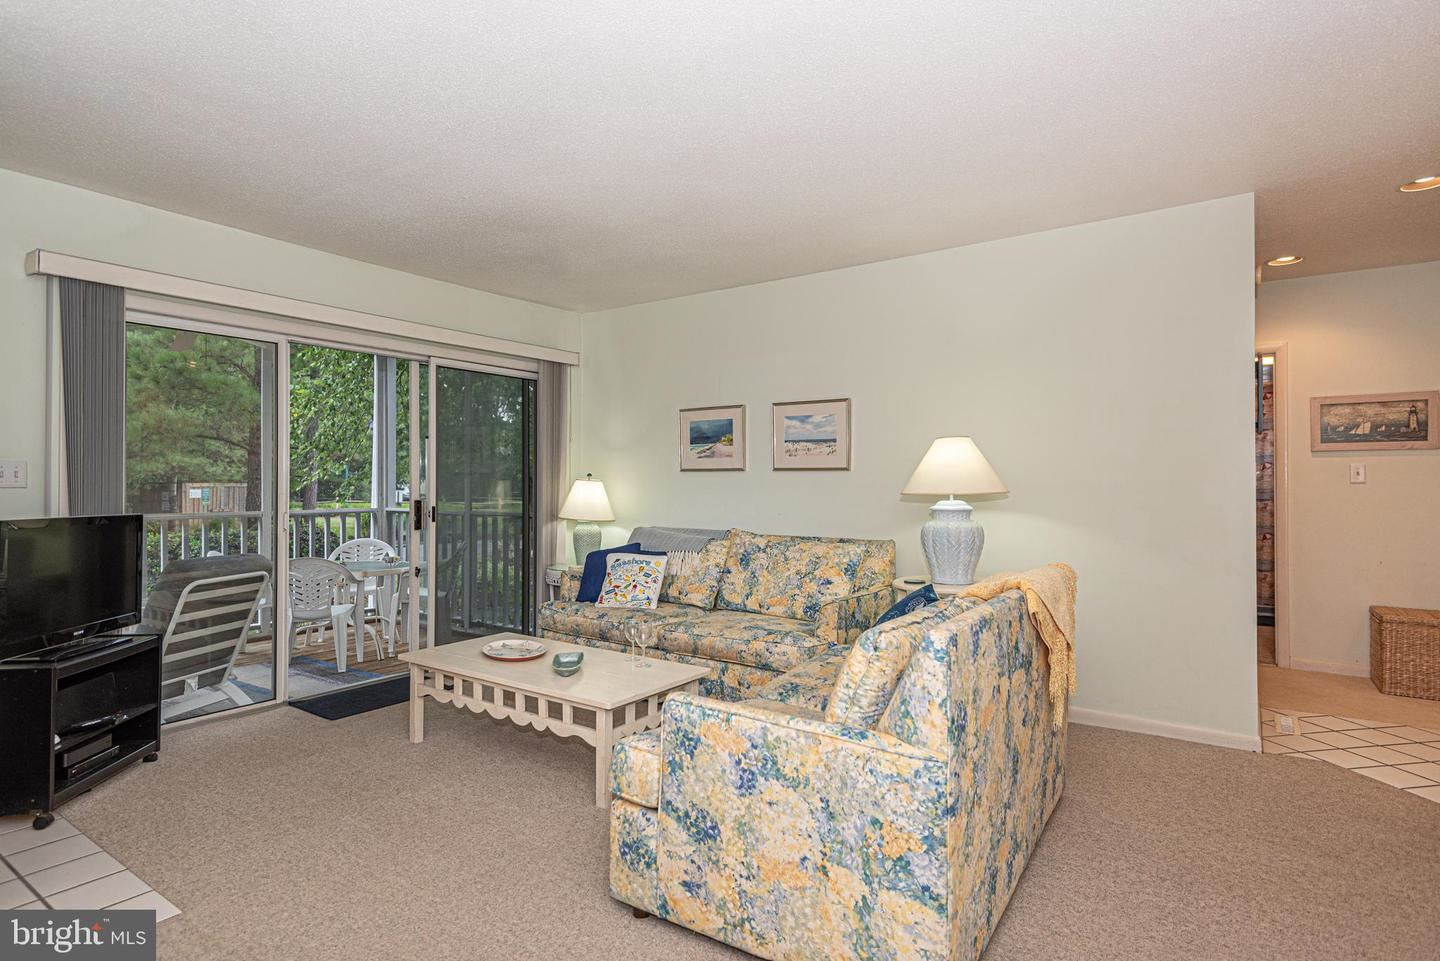 Photo of 33337 LAKEVIEW CT #18002, BETHANY BEACH, DE 19930 (MLS # DESU165560)